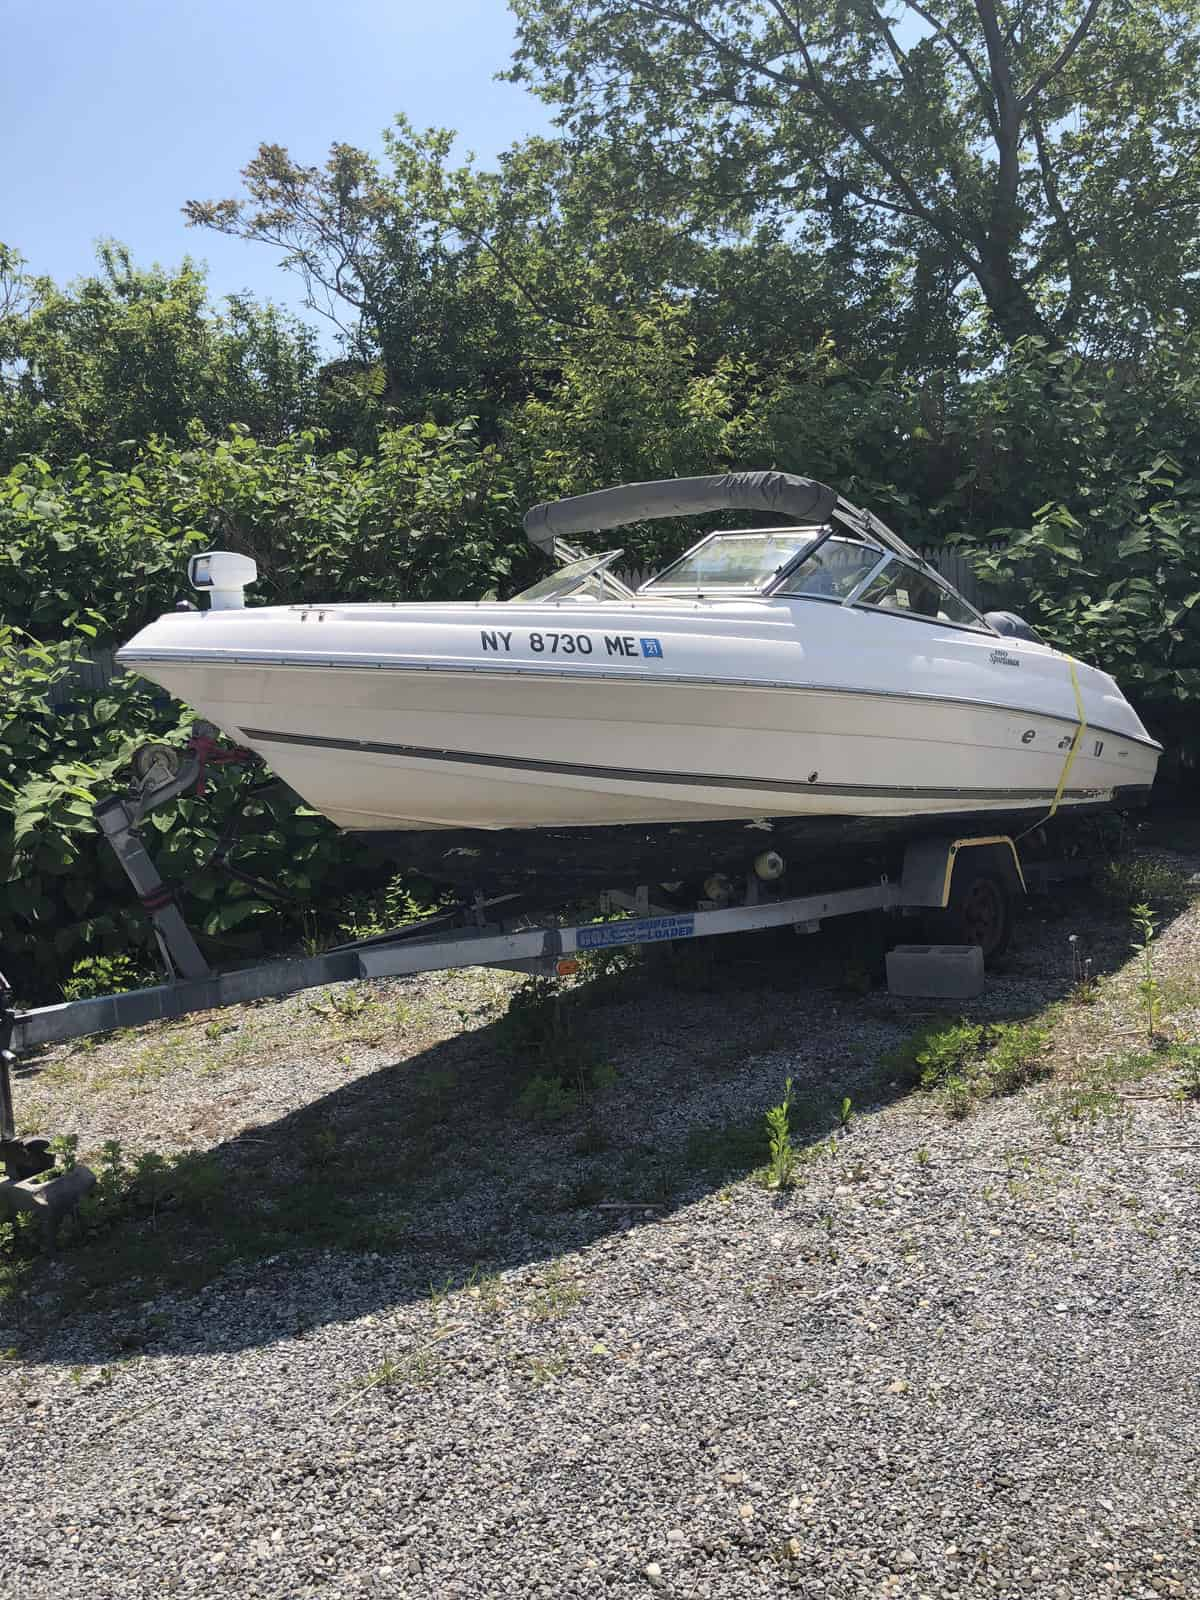 USED 2008 WellCraft Sportsman - Great Bay Marine